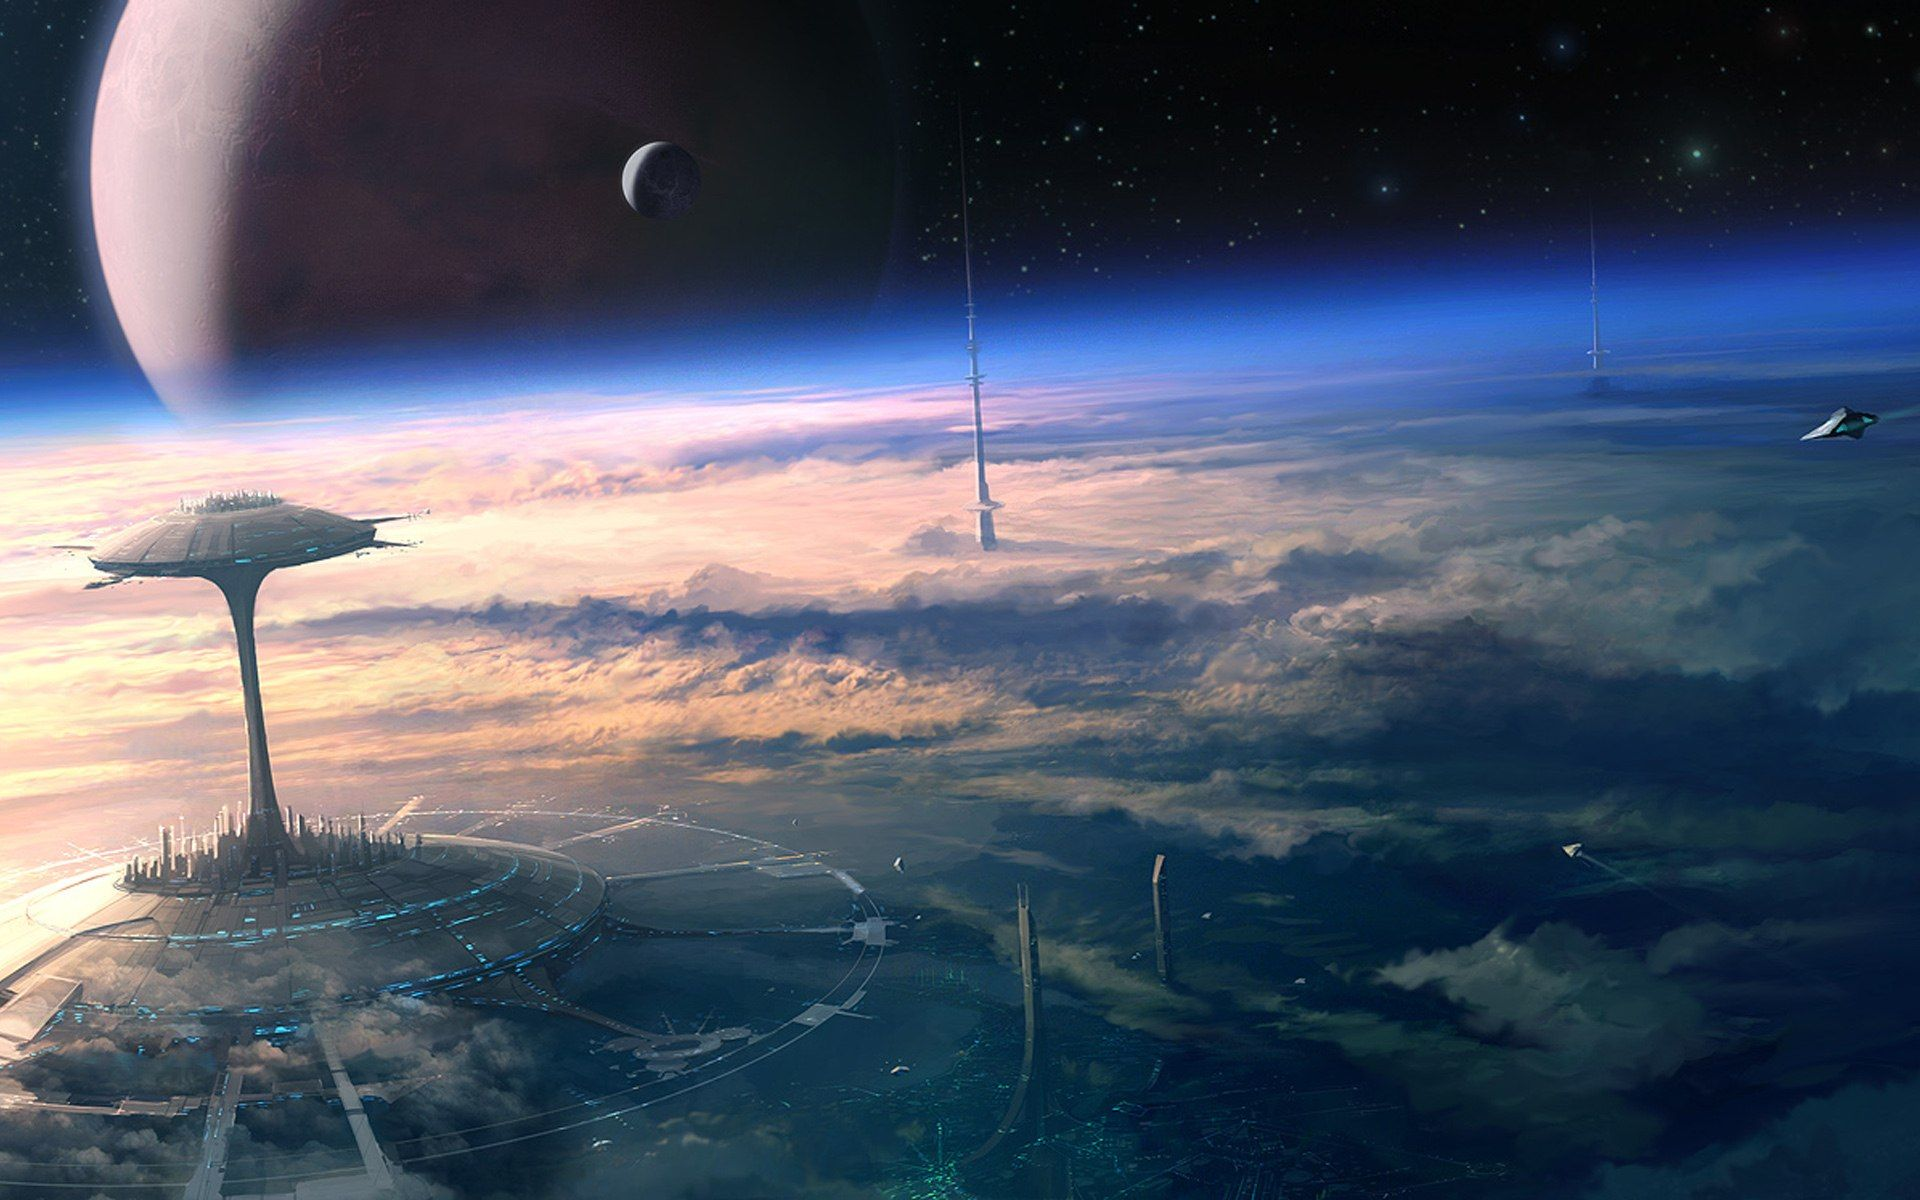 Futuristic Space City Wallpaper High Space Wallpaper